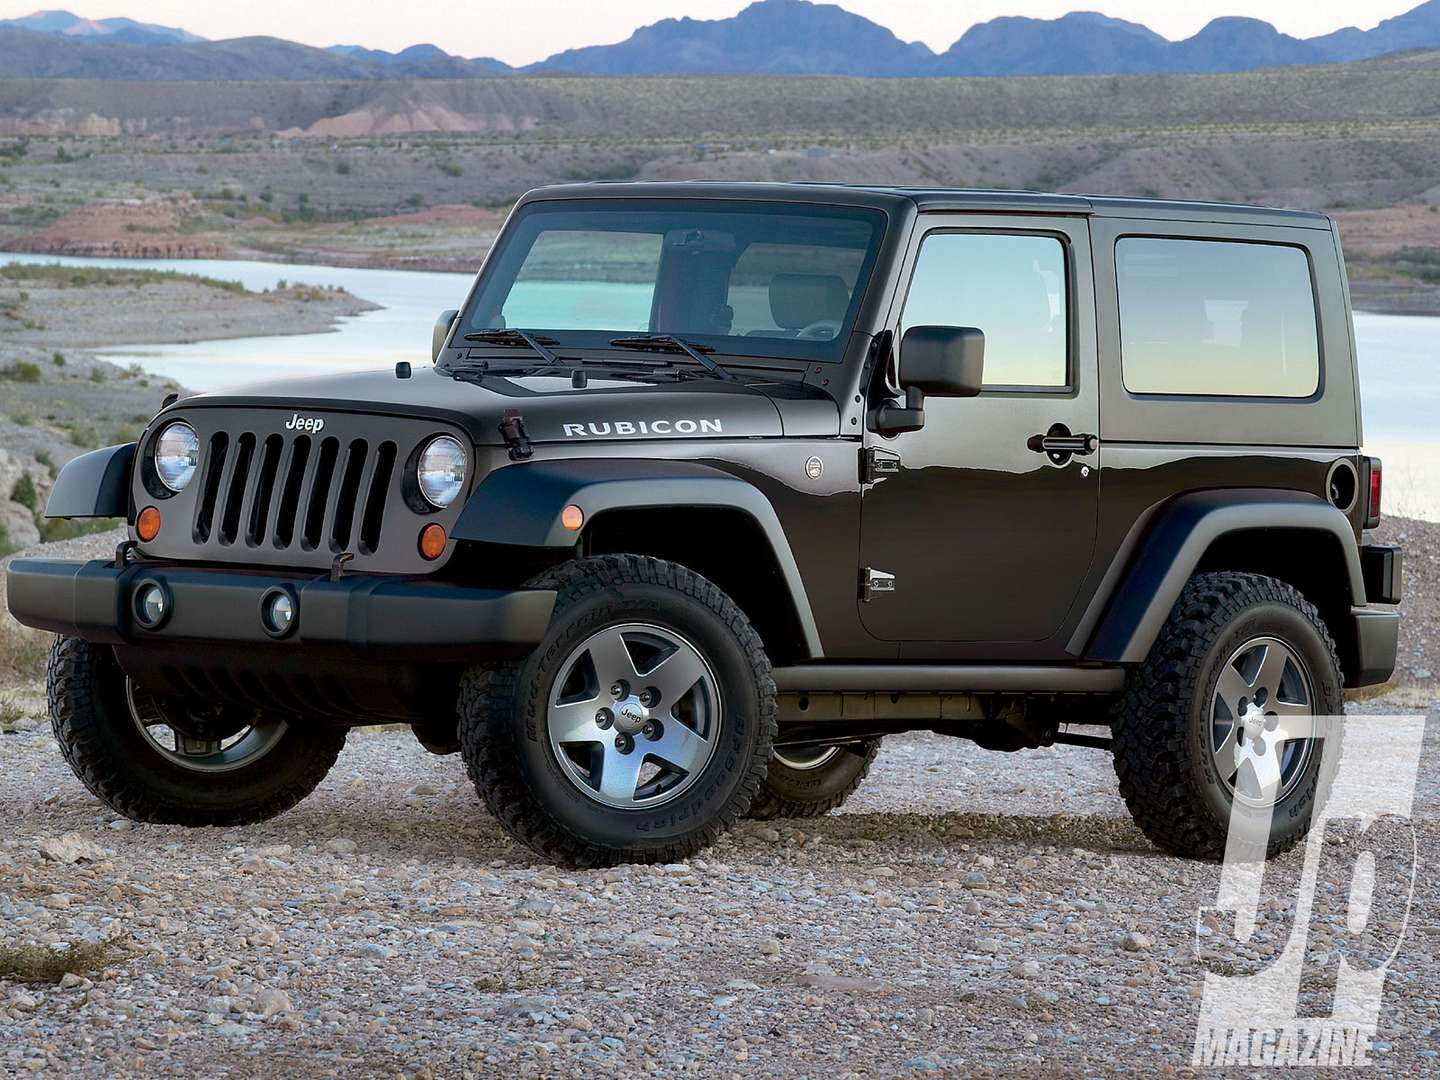 Jeep Rubicon #8990164